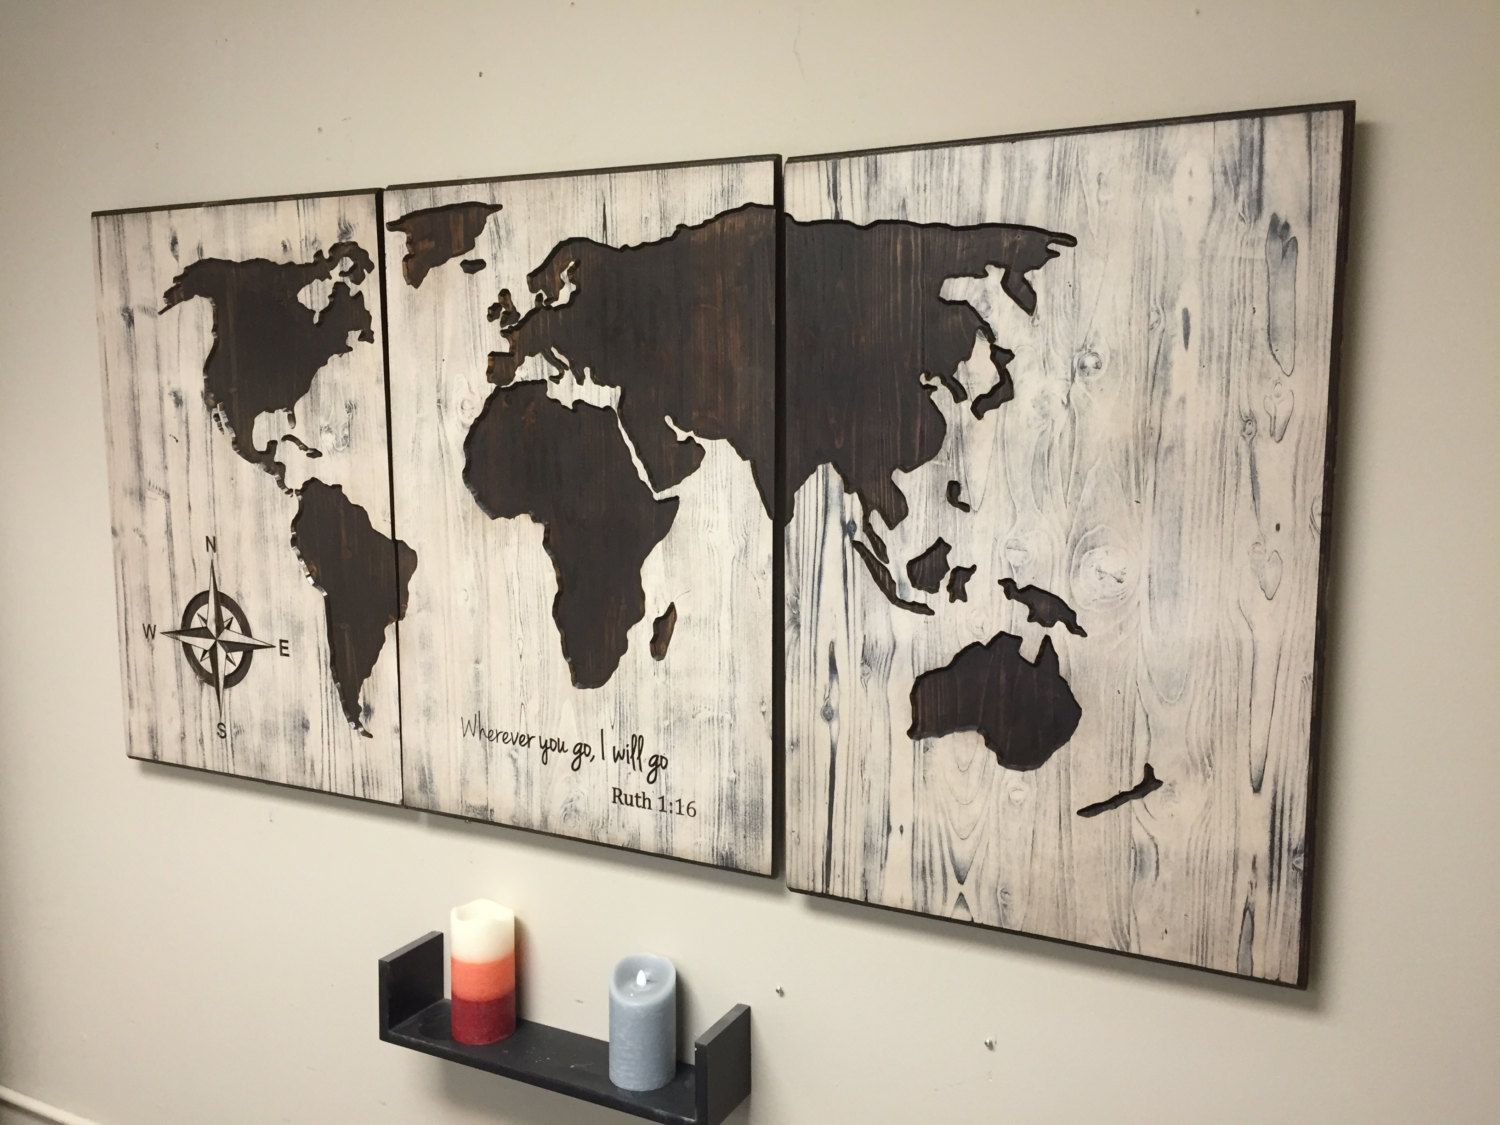 Rustic world map wall art carved home decor 3 panel map ruth 116 rustic world map wall art carved home decor 3 panel map ruth 116 where you go i will go custom quote sign anniversary gift idea gumiabroncs Image collections